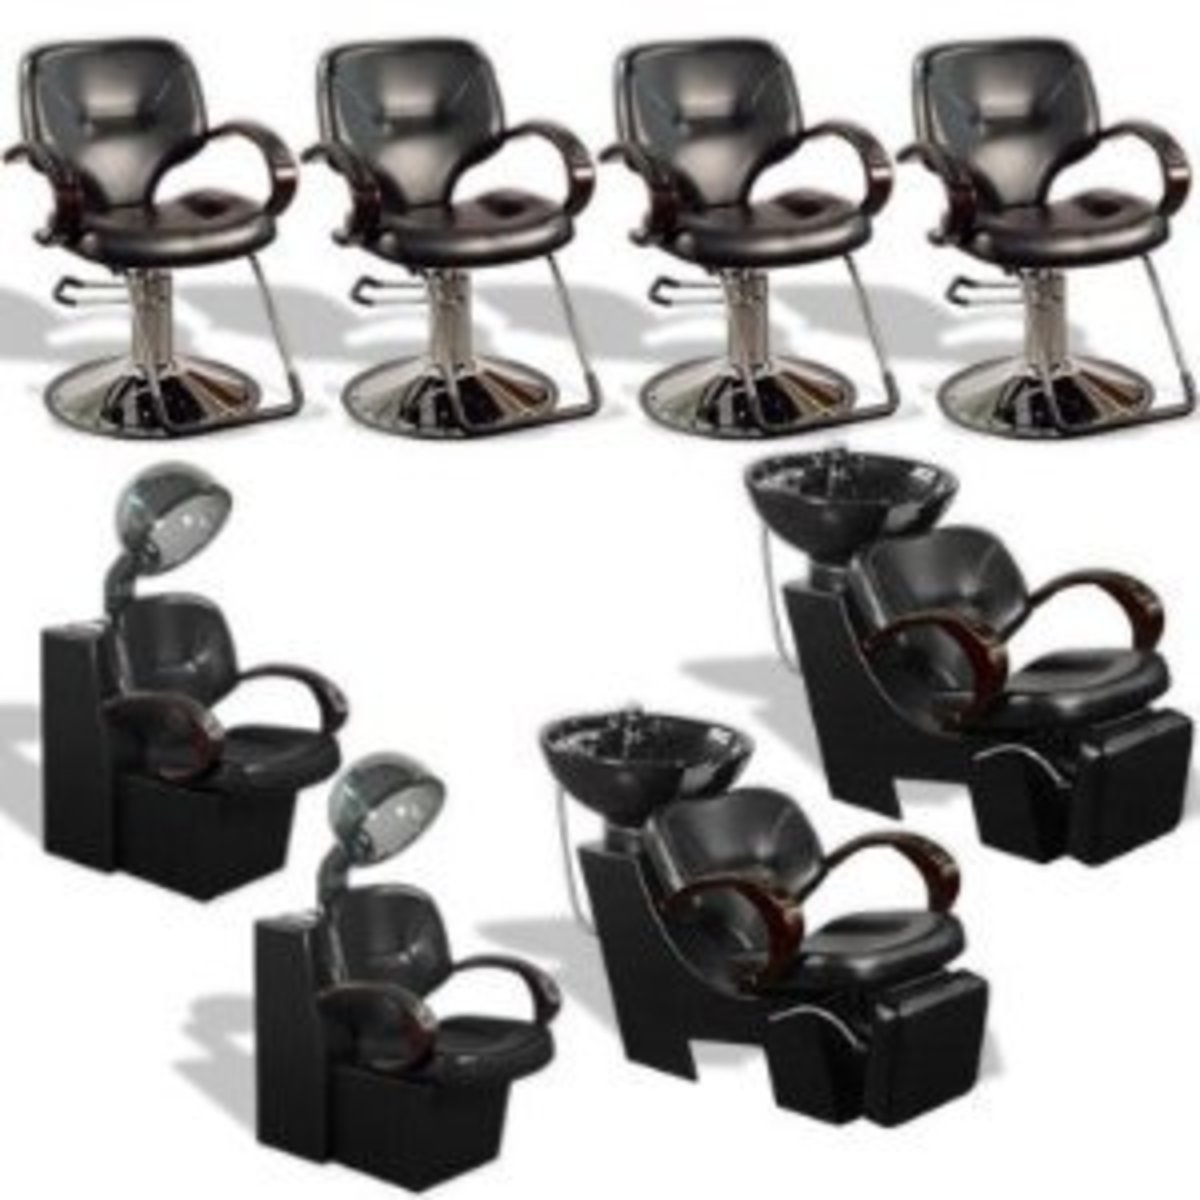 Hair Salon Equipment Buy Wholesale